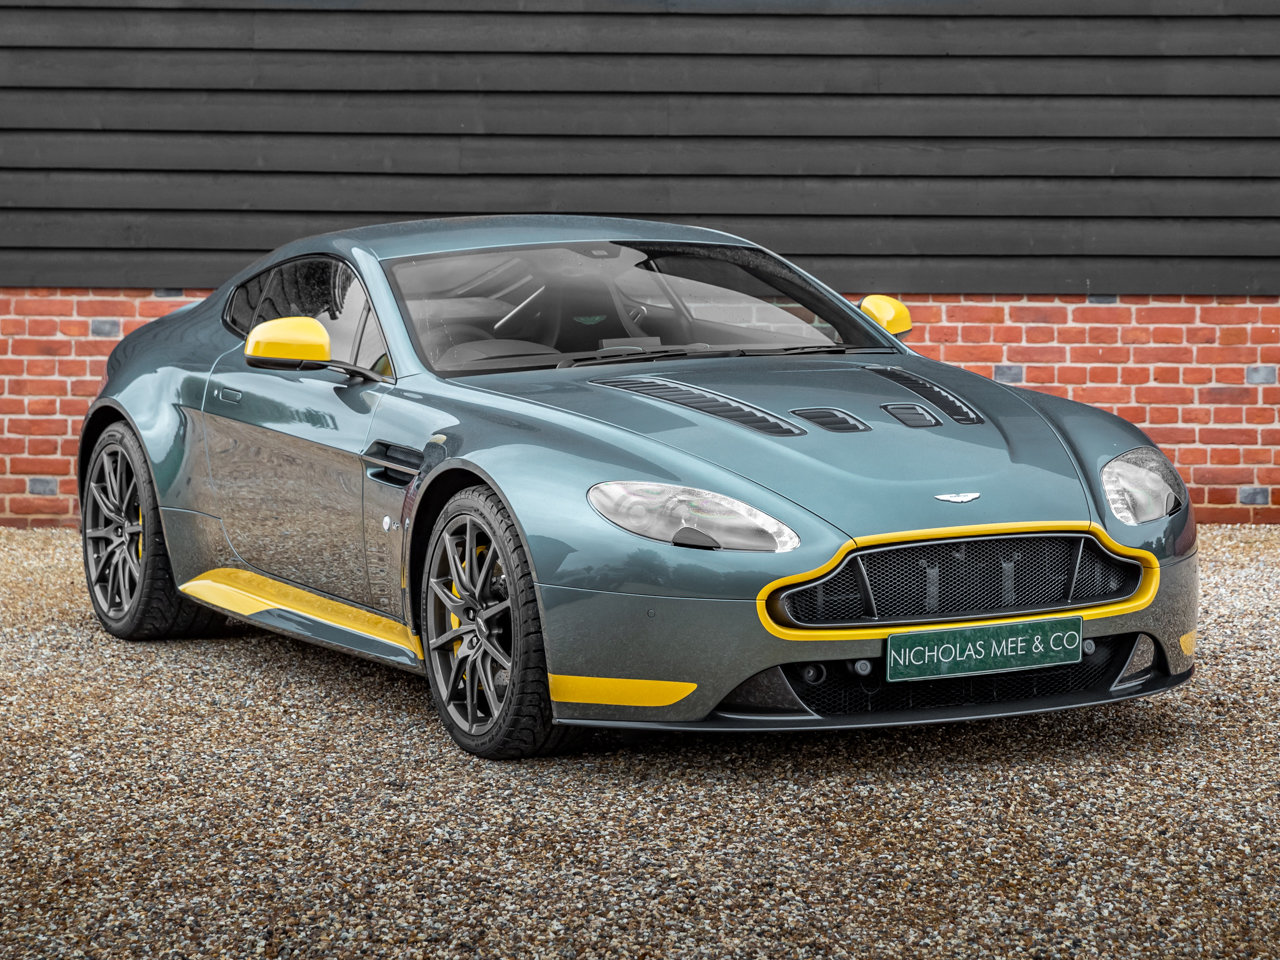 2017 Aston Martin V12 Vantage S Manual Coupe For Sale (picture 1 of 6)